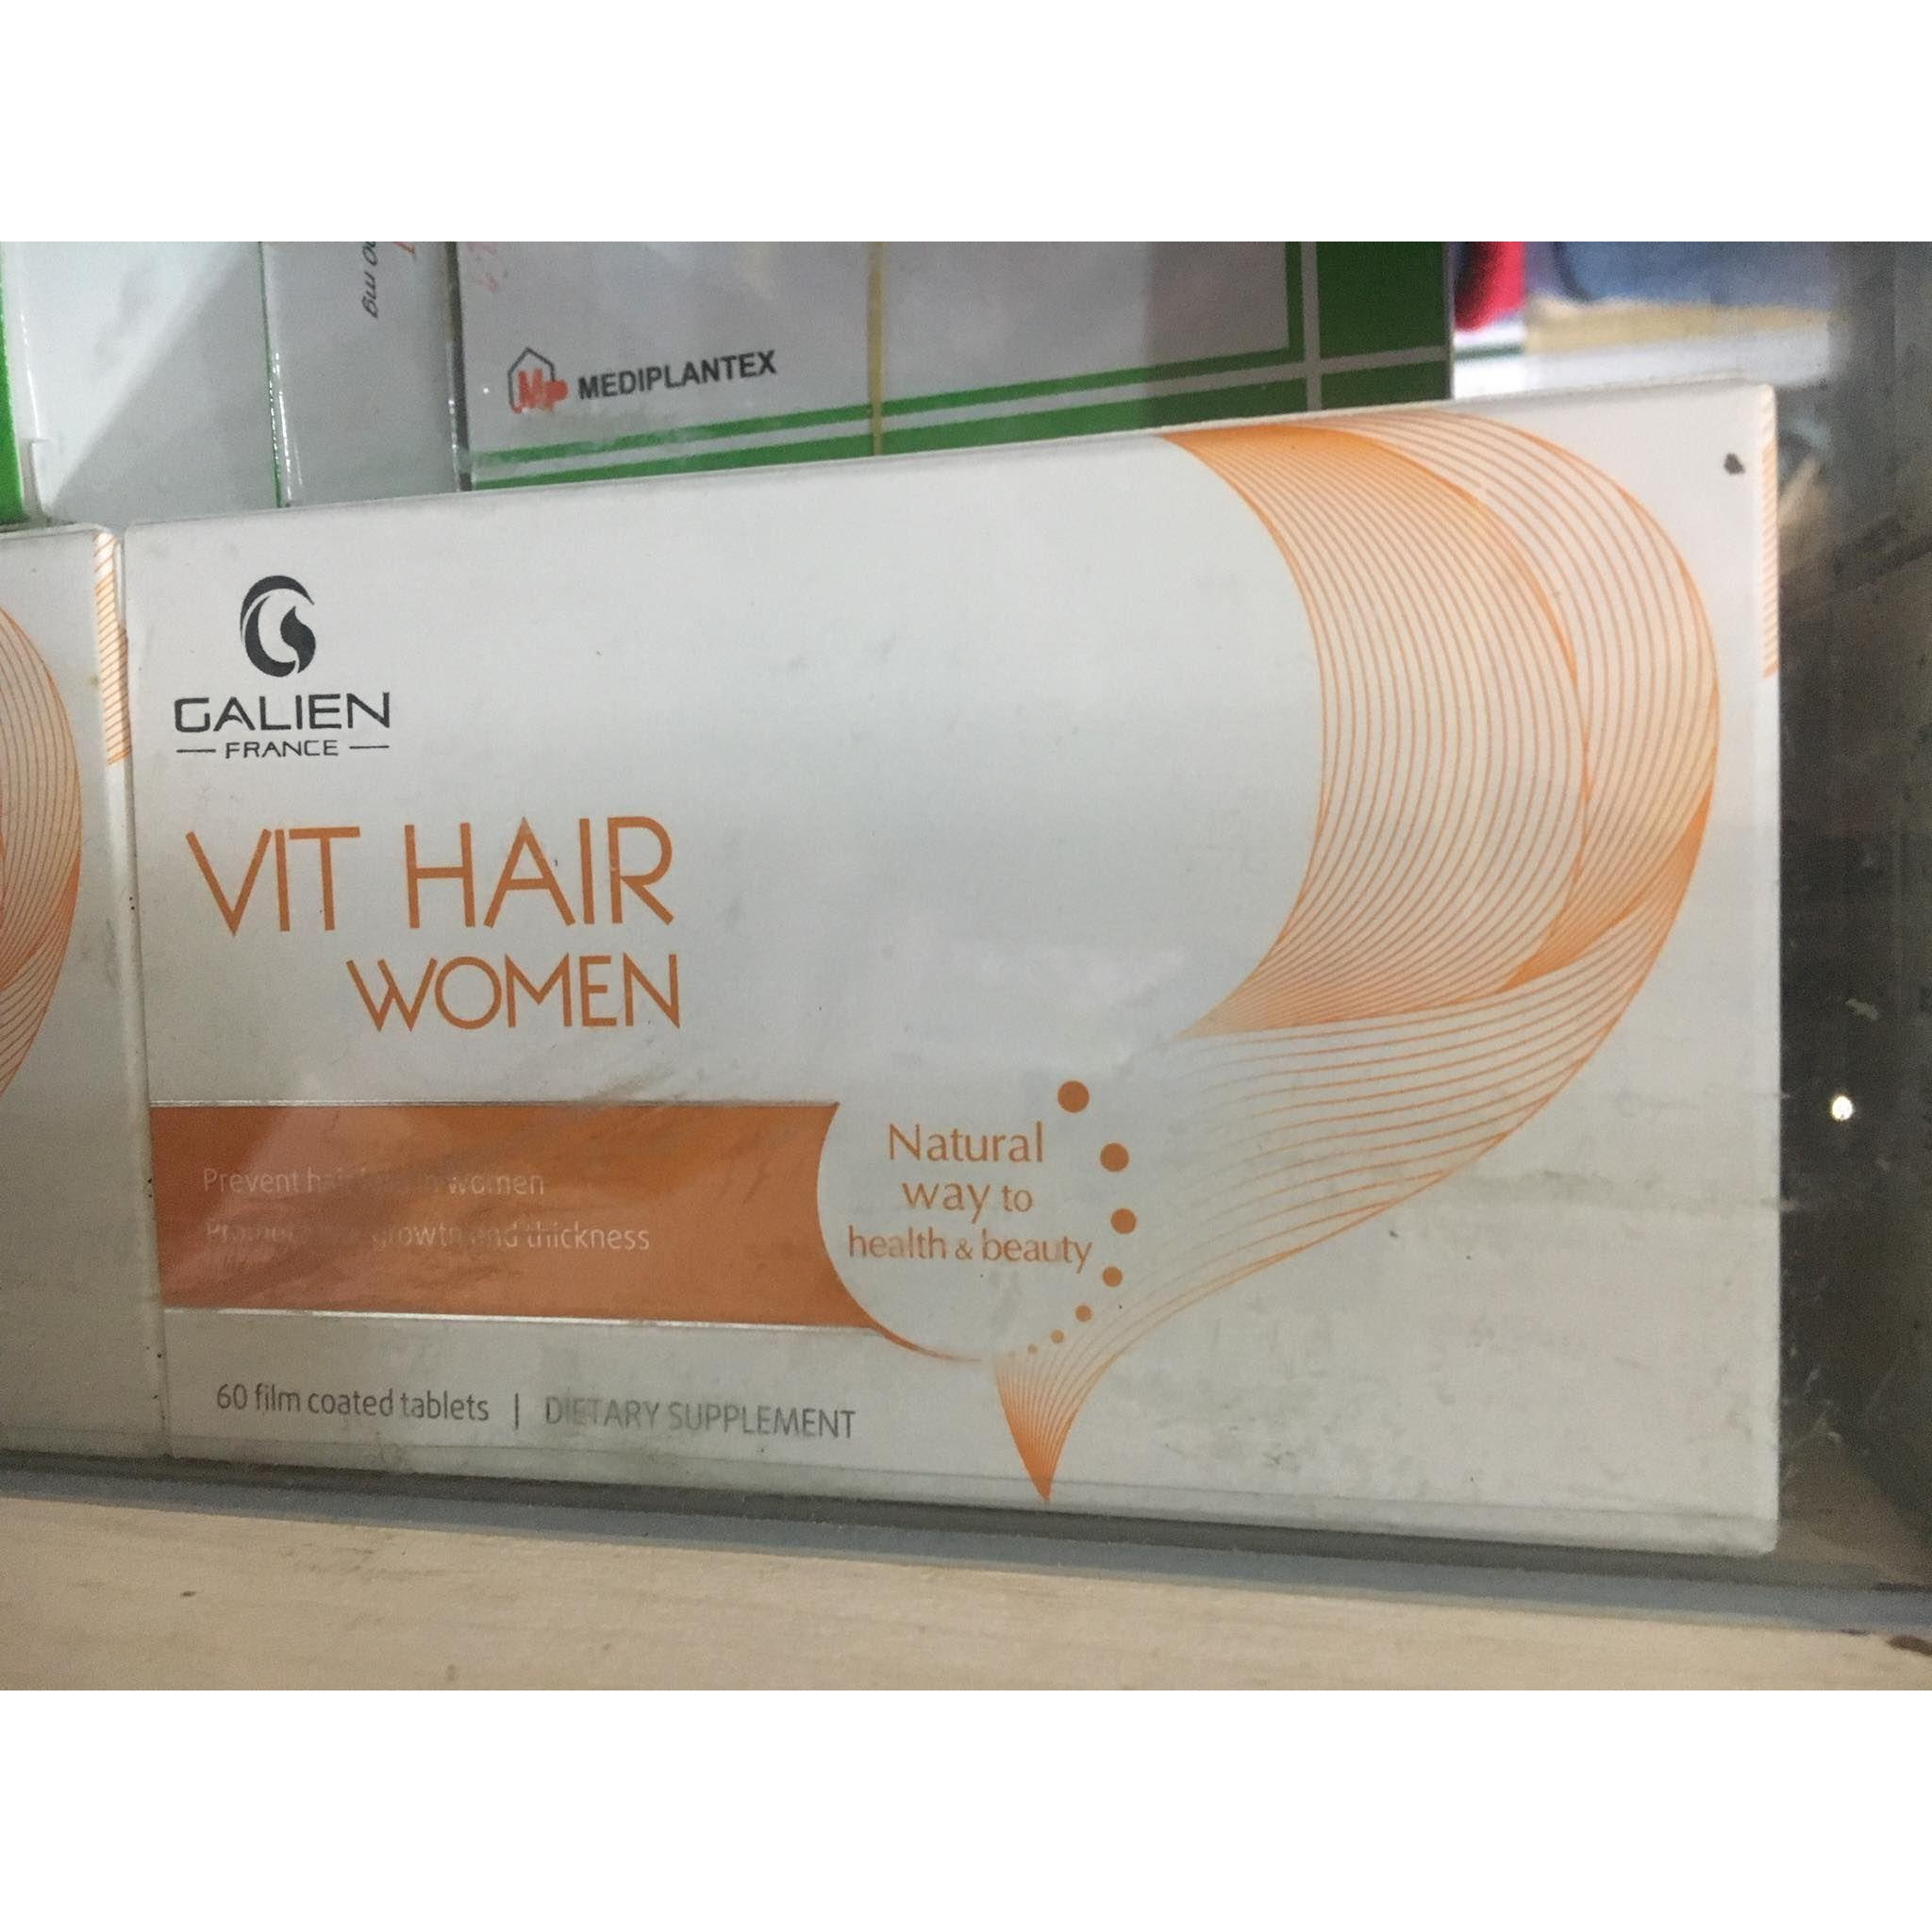 Vit Hair Women